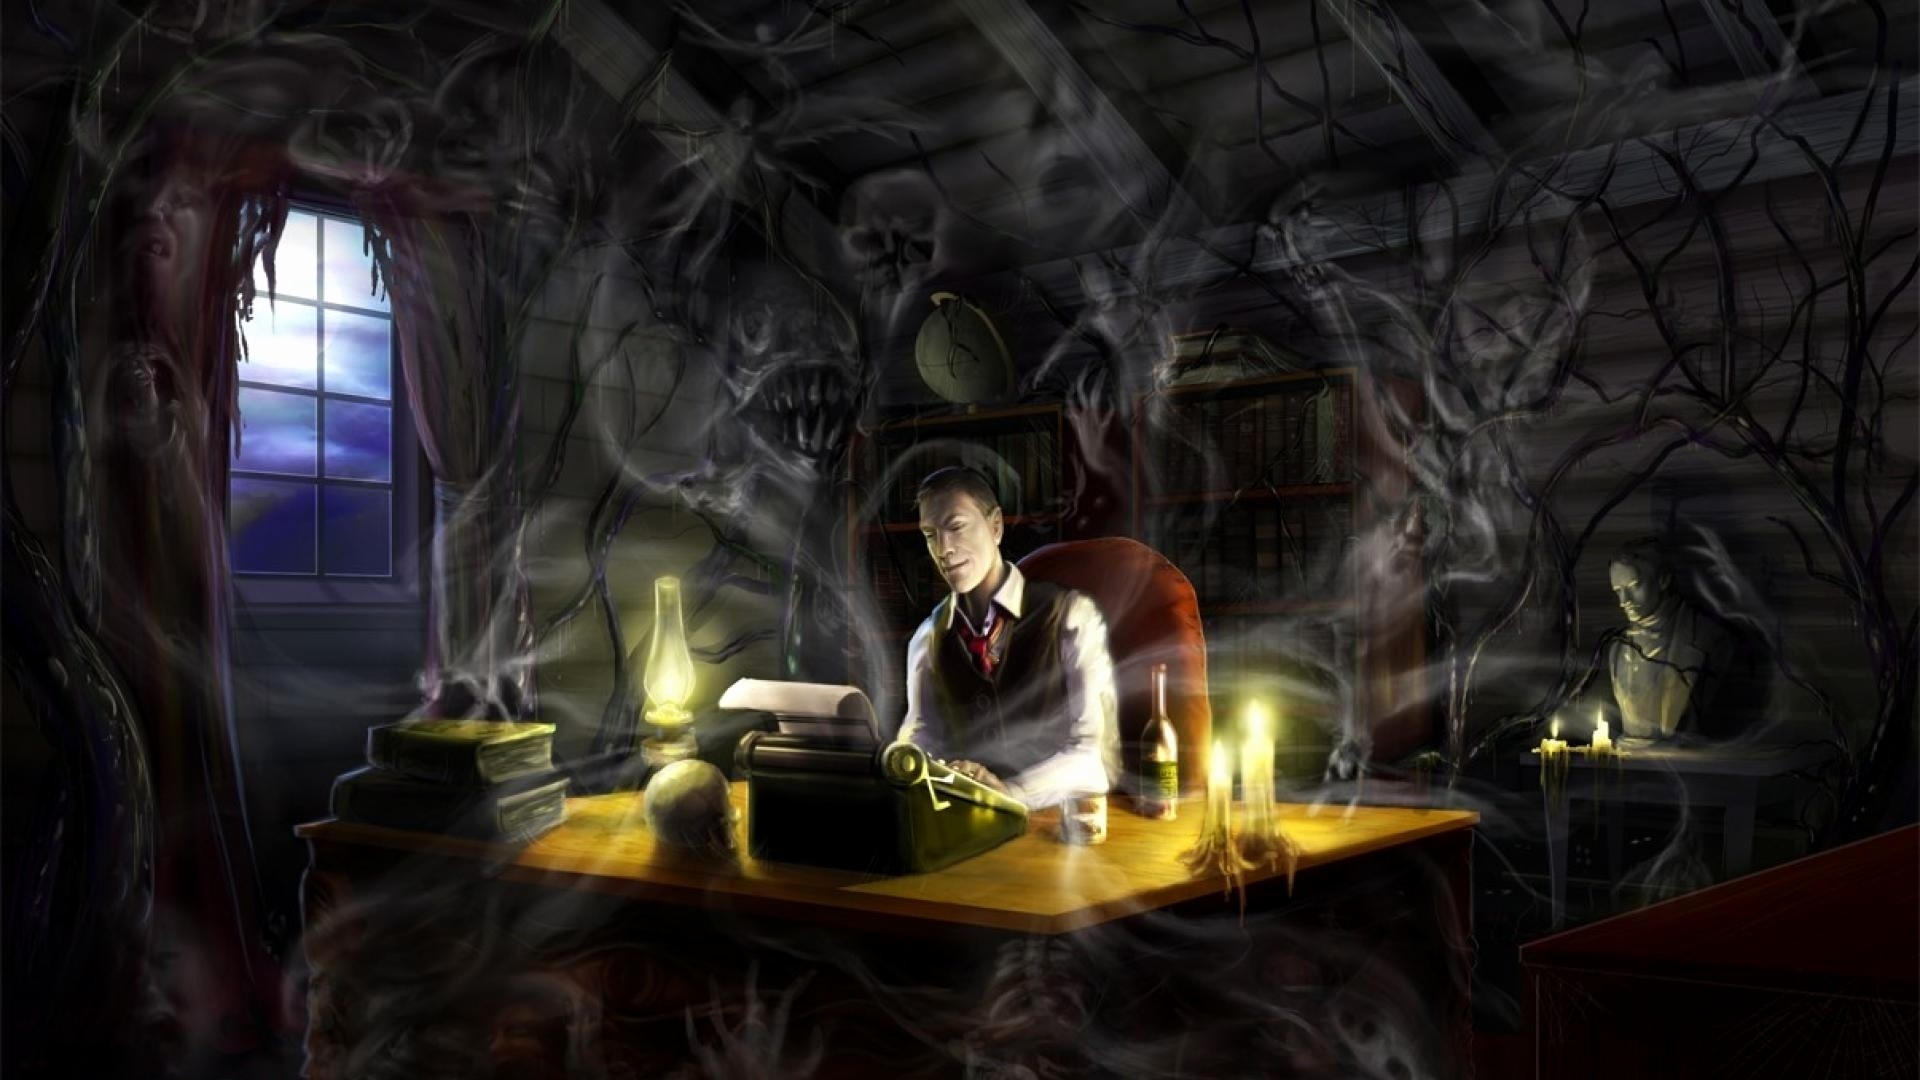 Lovecraft Wallpaper For Pc